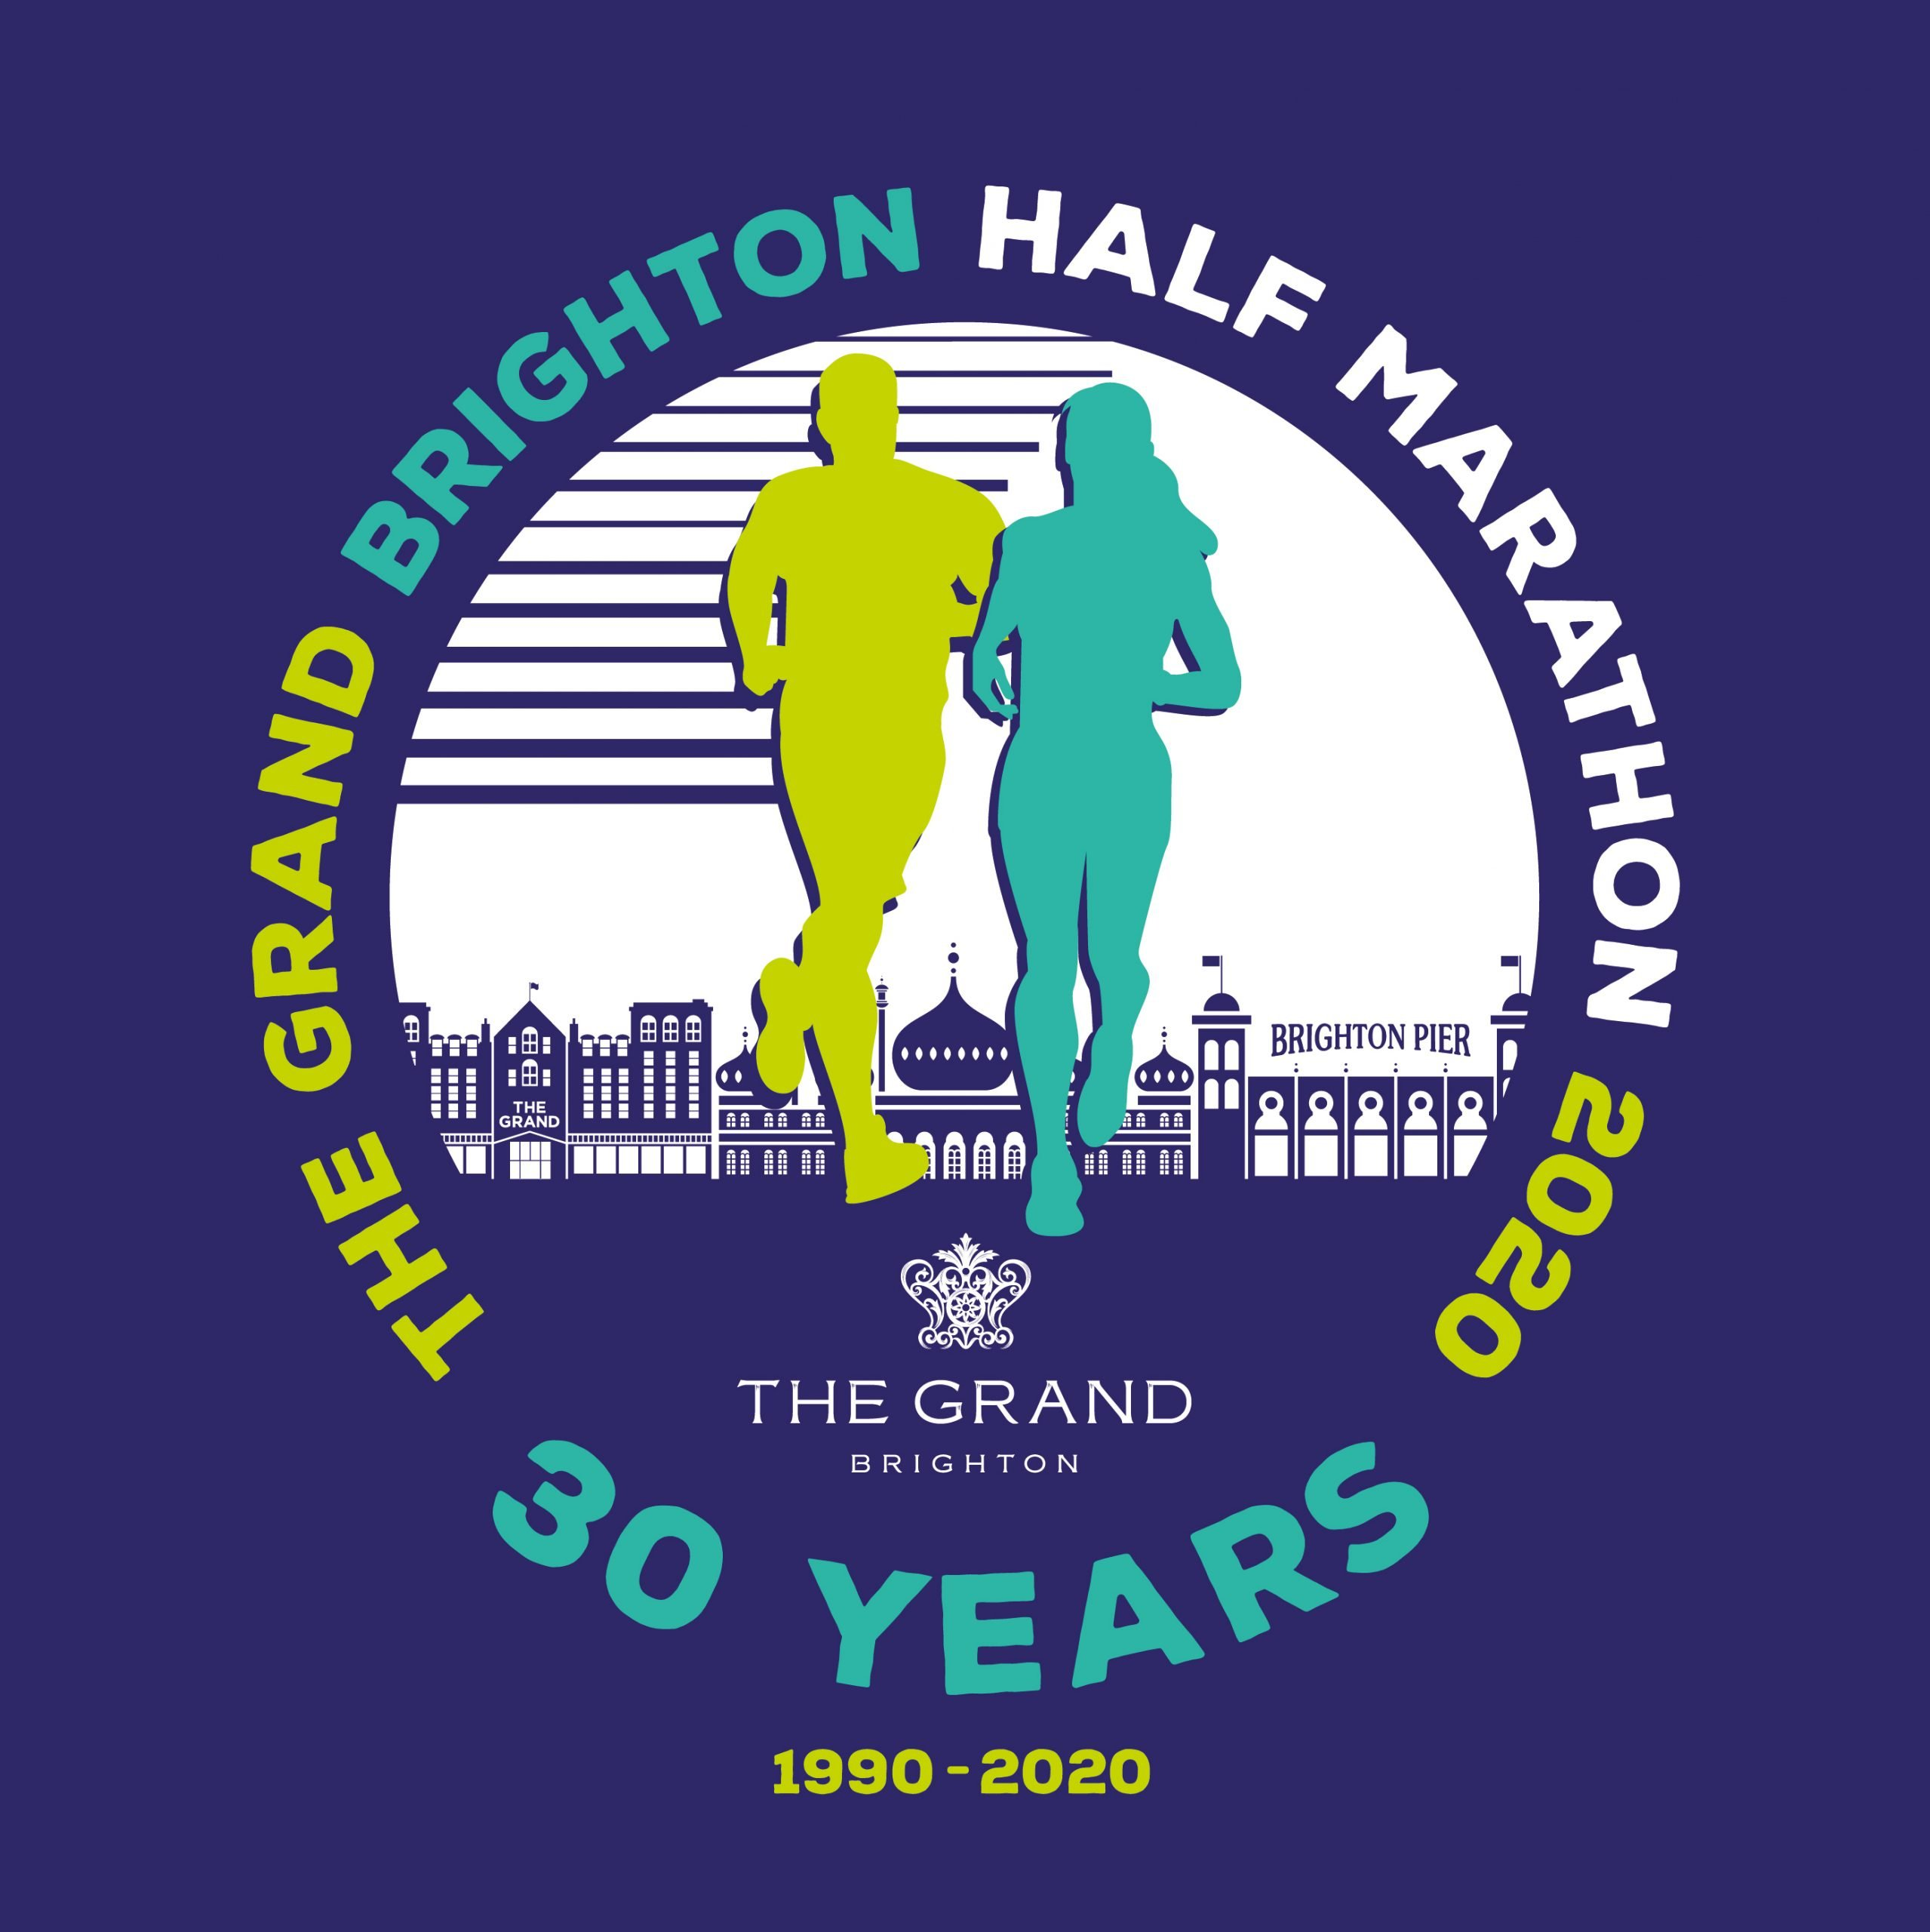 Brighton Half Marathon - 30 Years